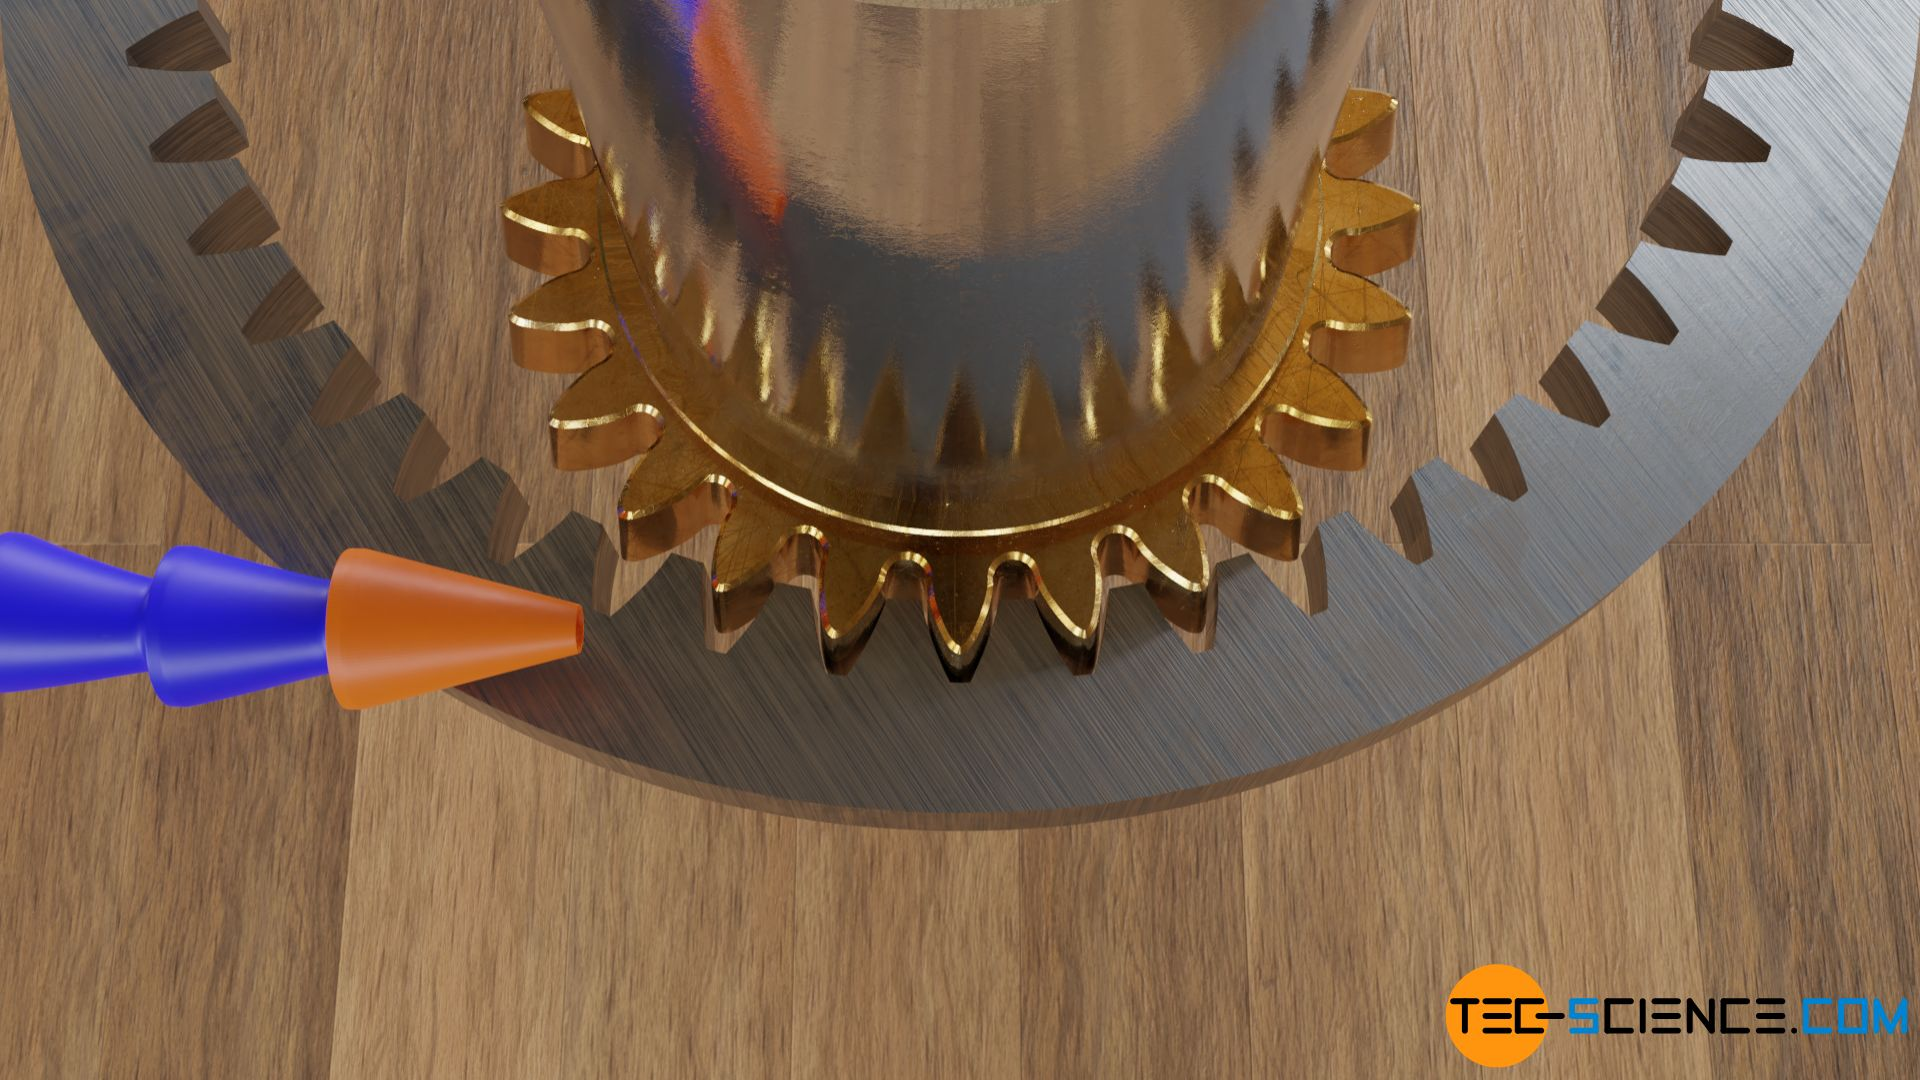 Manufacturing an internal gear by shaping